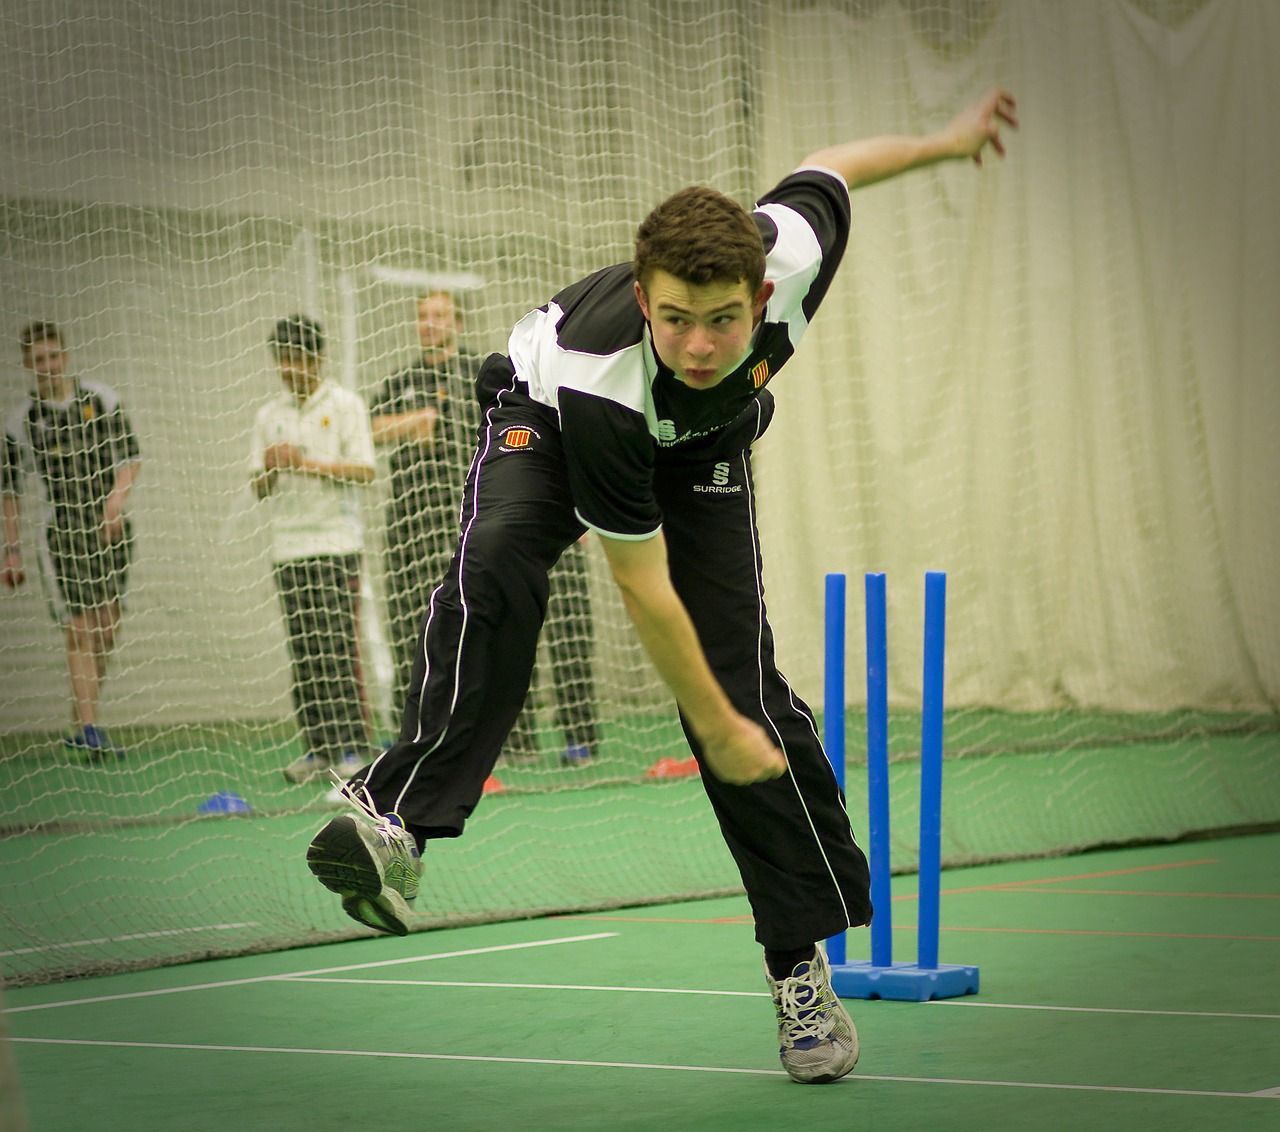 indoor-cricket